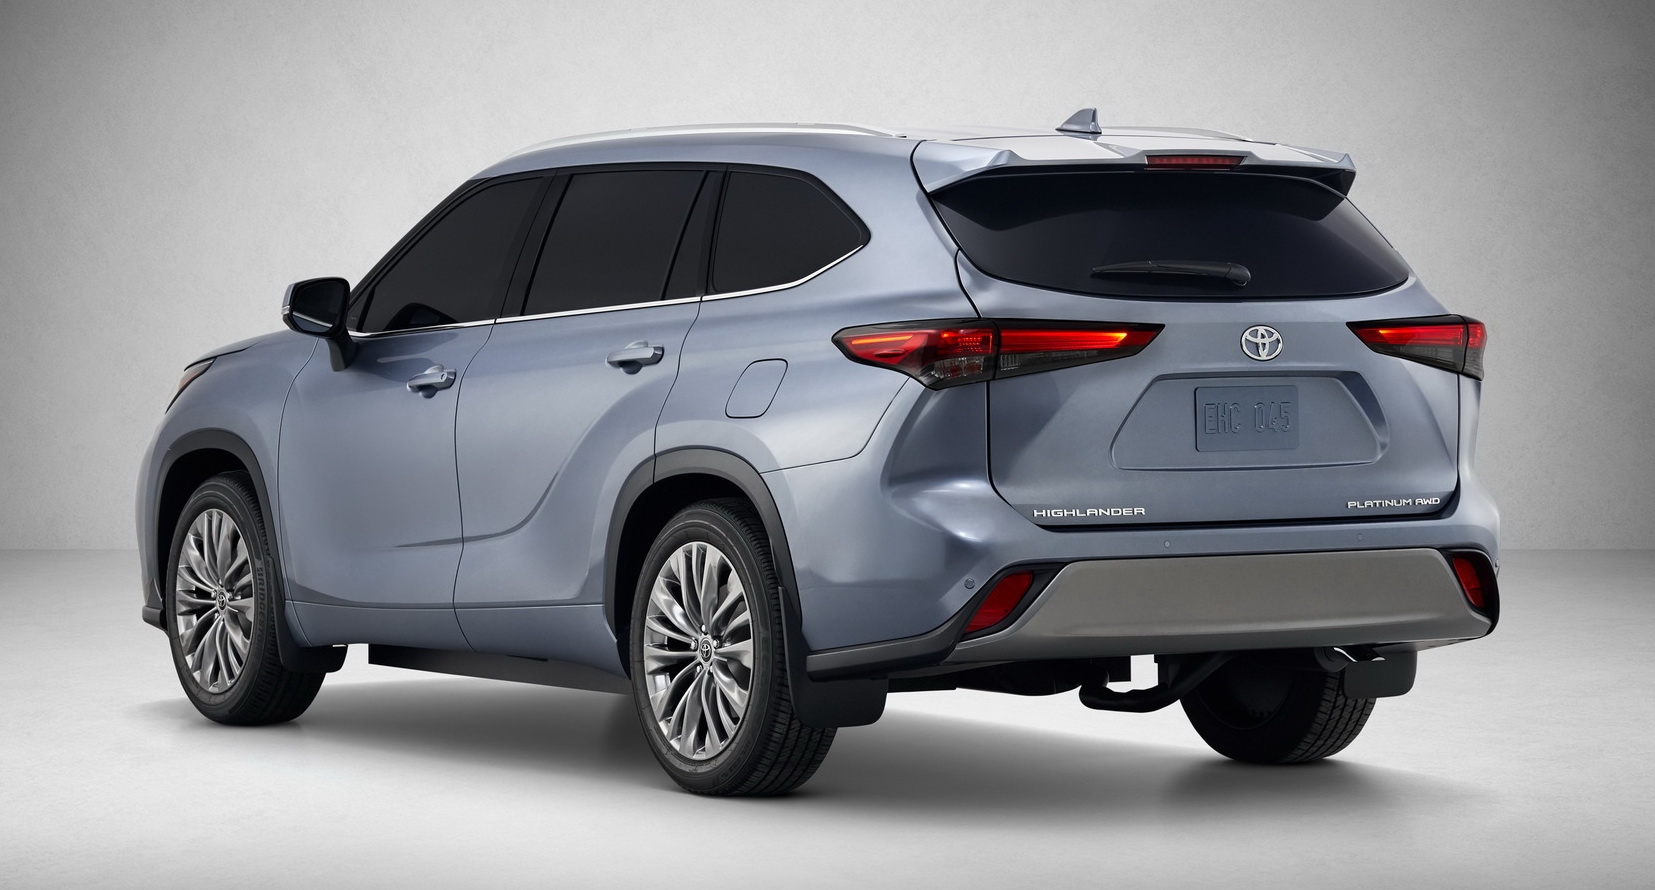 Crossover SUV juices up with thrifty, 34-mpg hybrid — Toyota Highlander unveiled